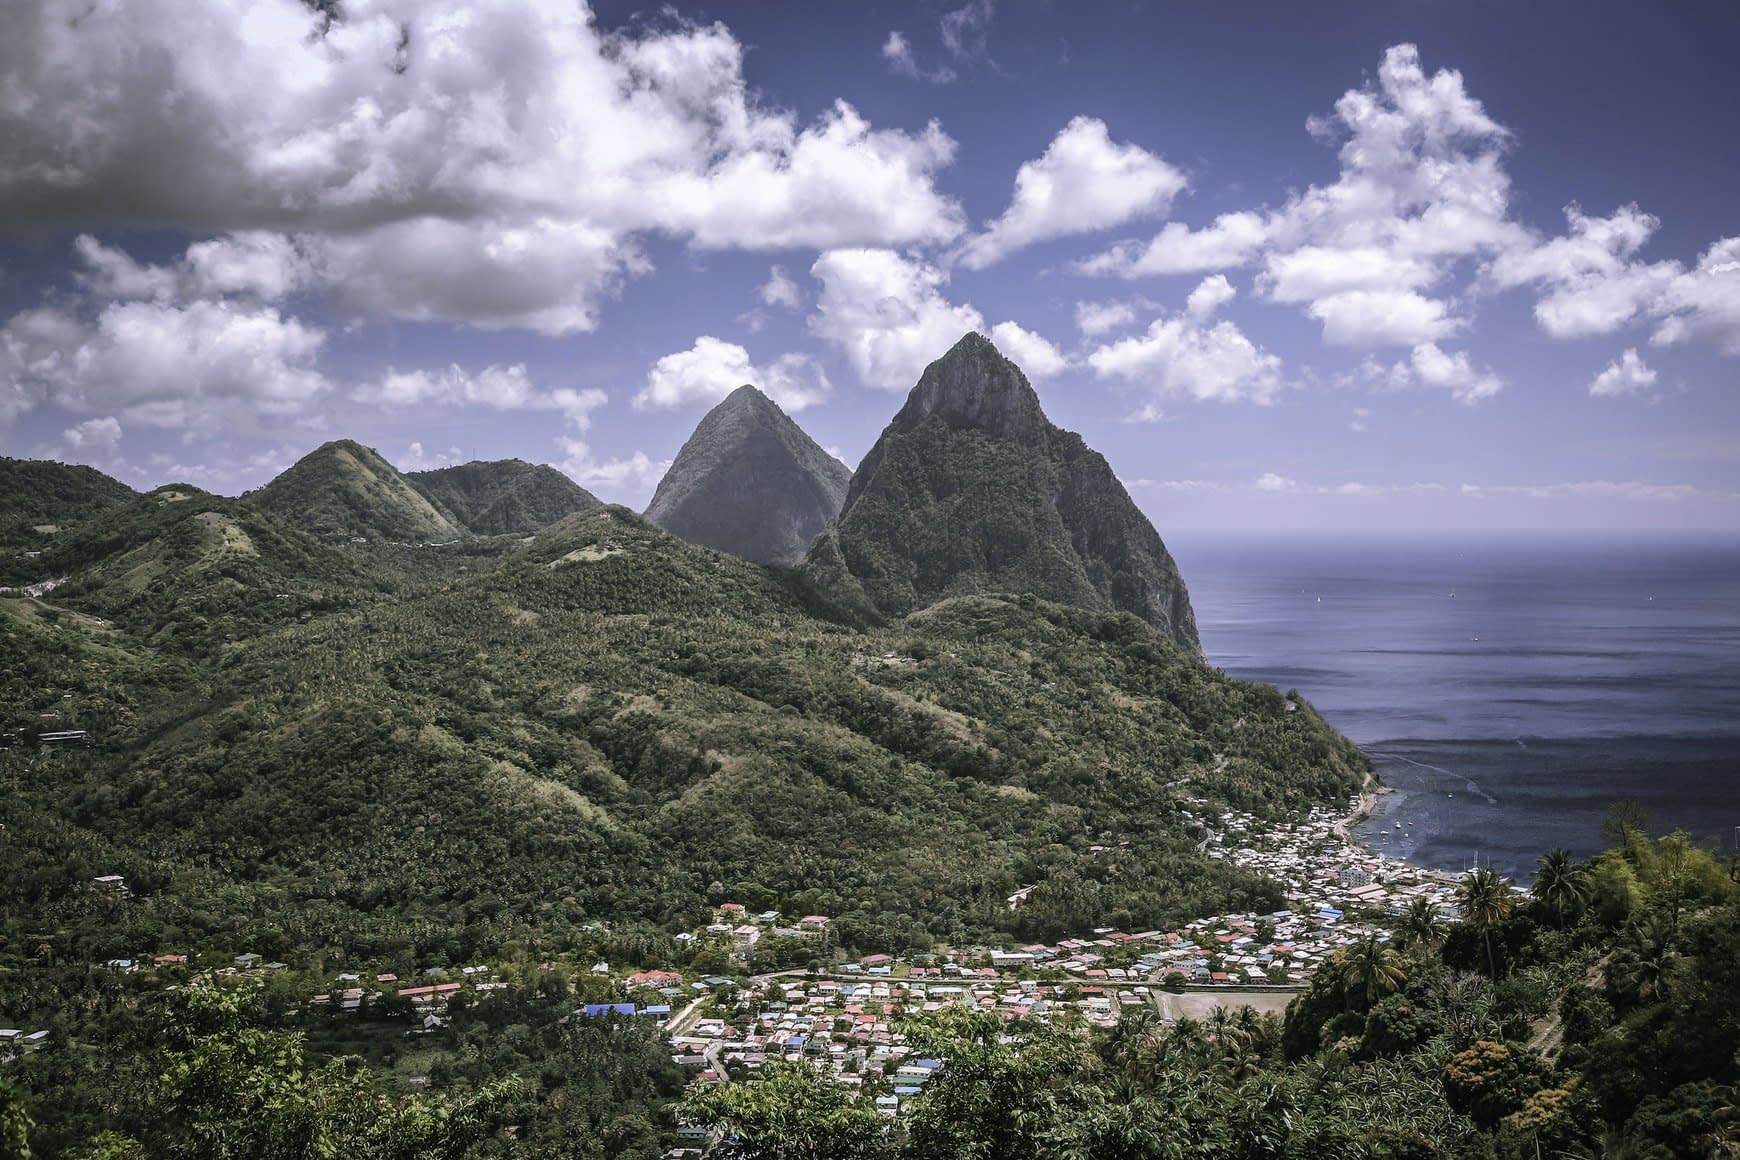 , Report Establishes Sustainable Vision Planning For St. Lucia., TheCircularEconomy.com